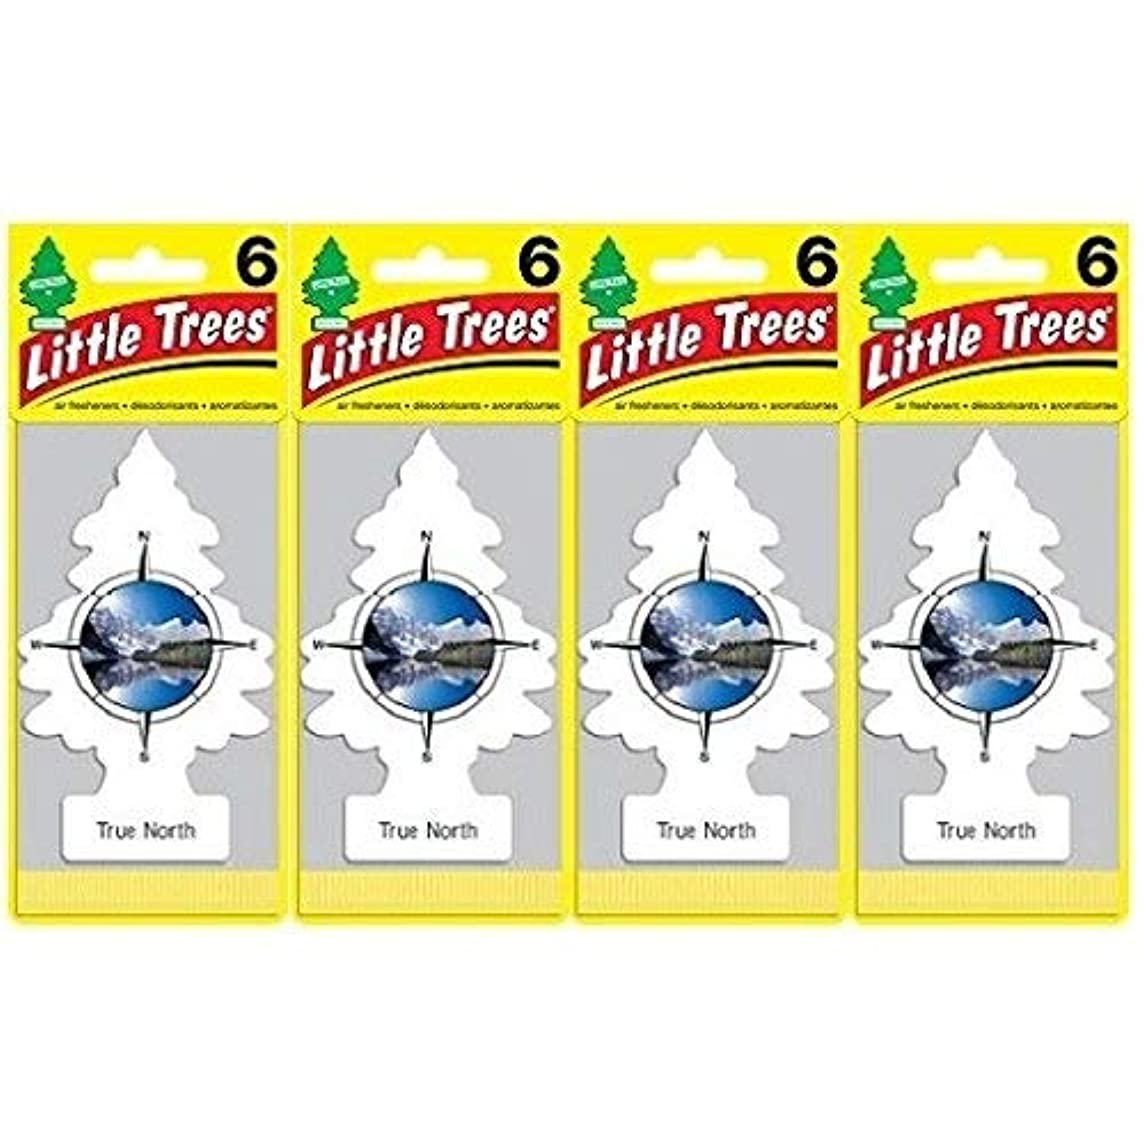 Little Trees Air Fresheners, True North (Pack of 24)